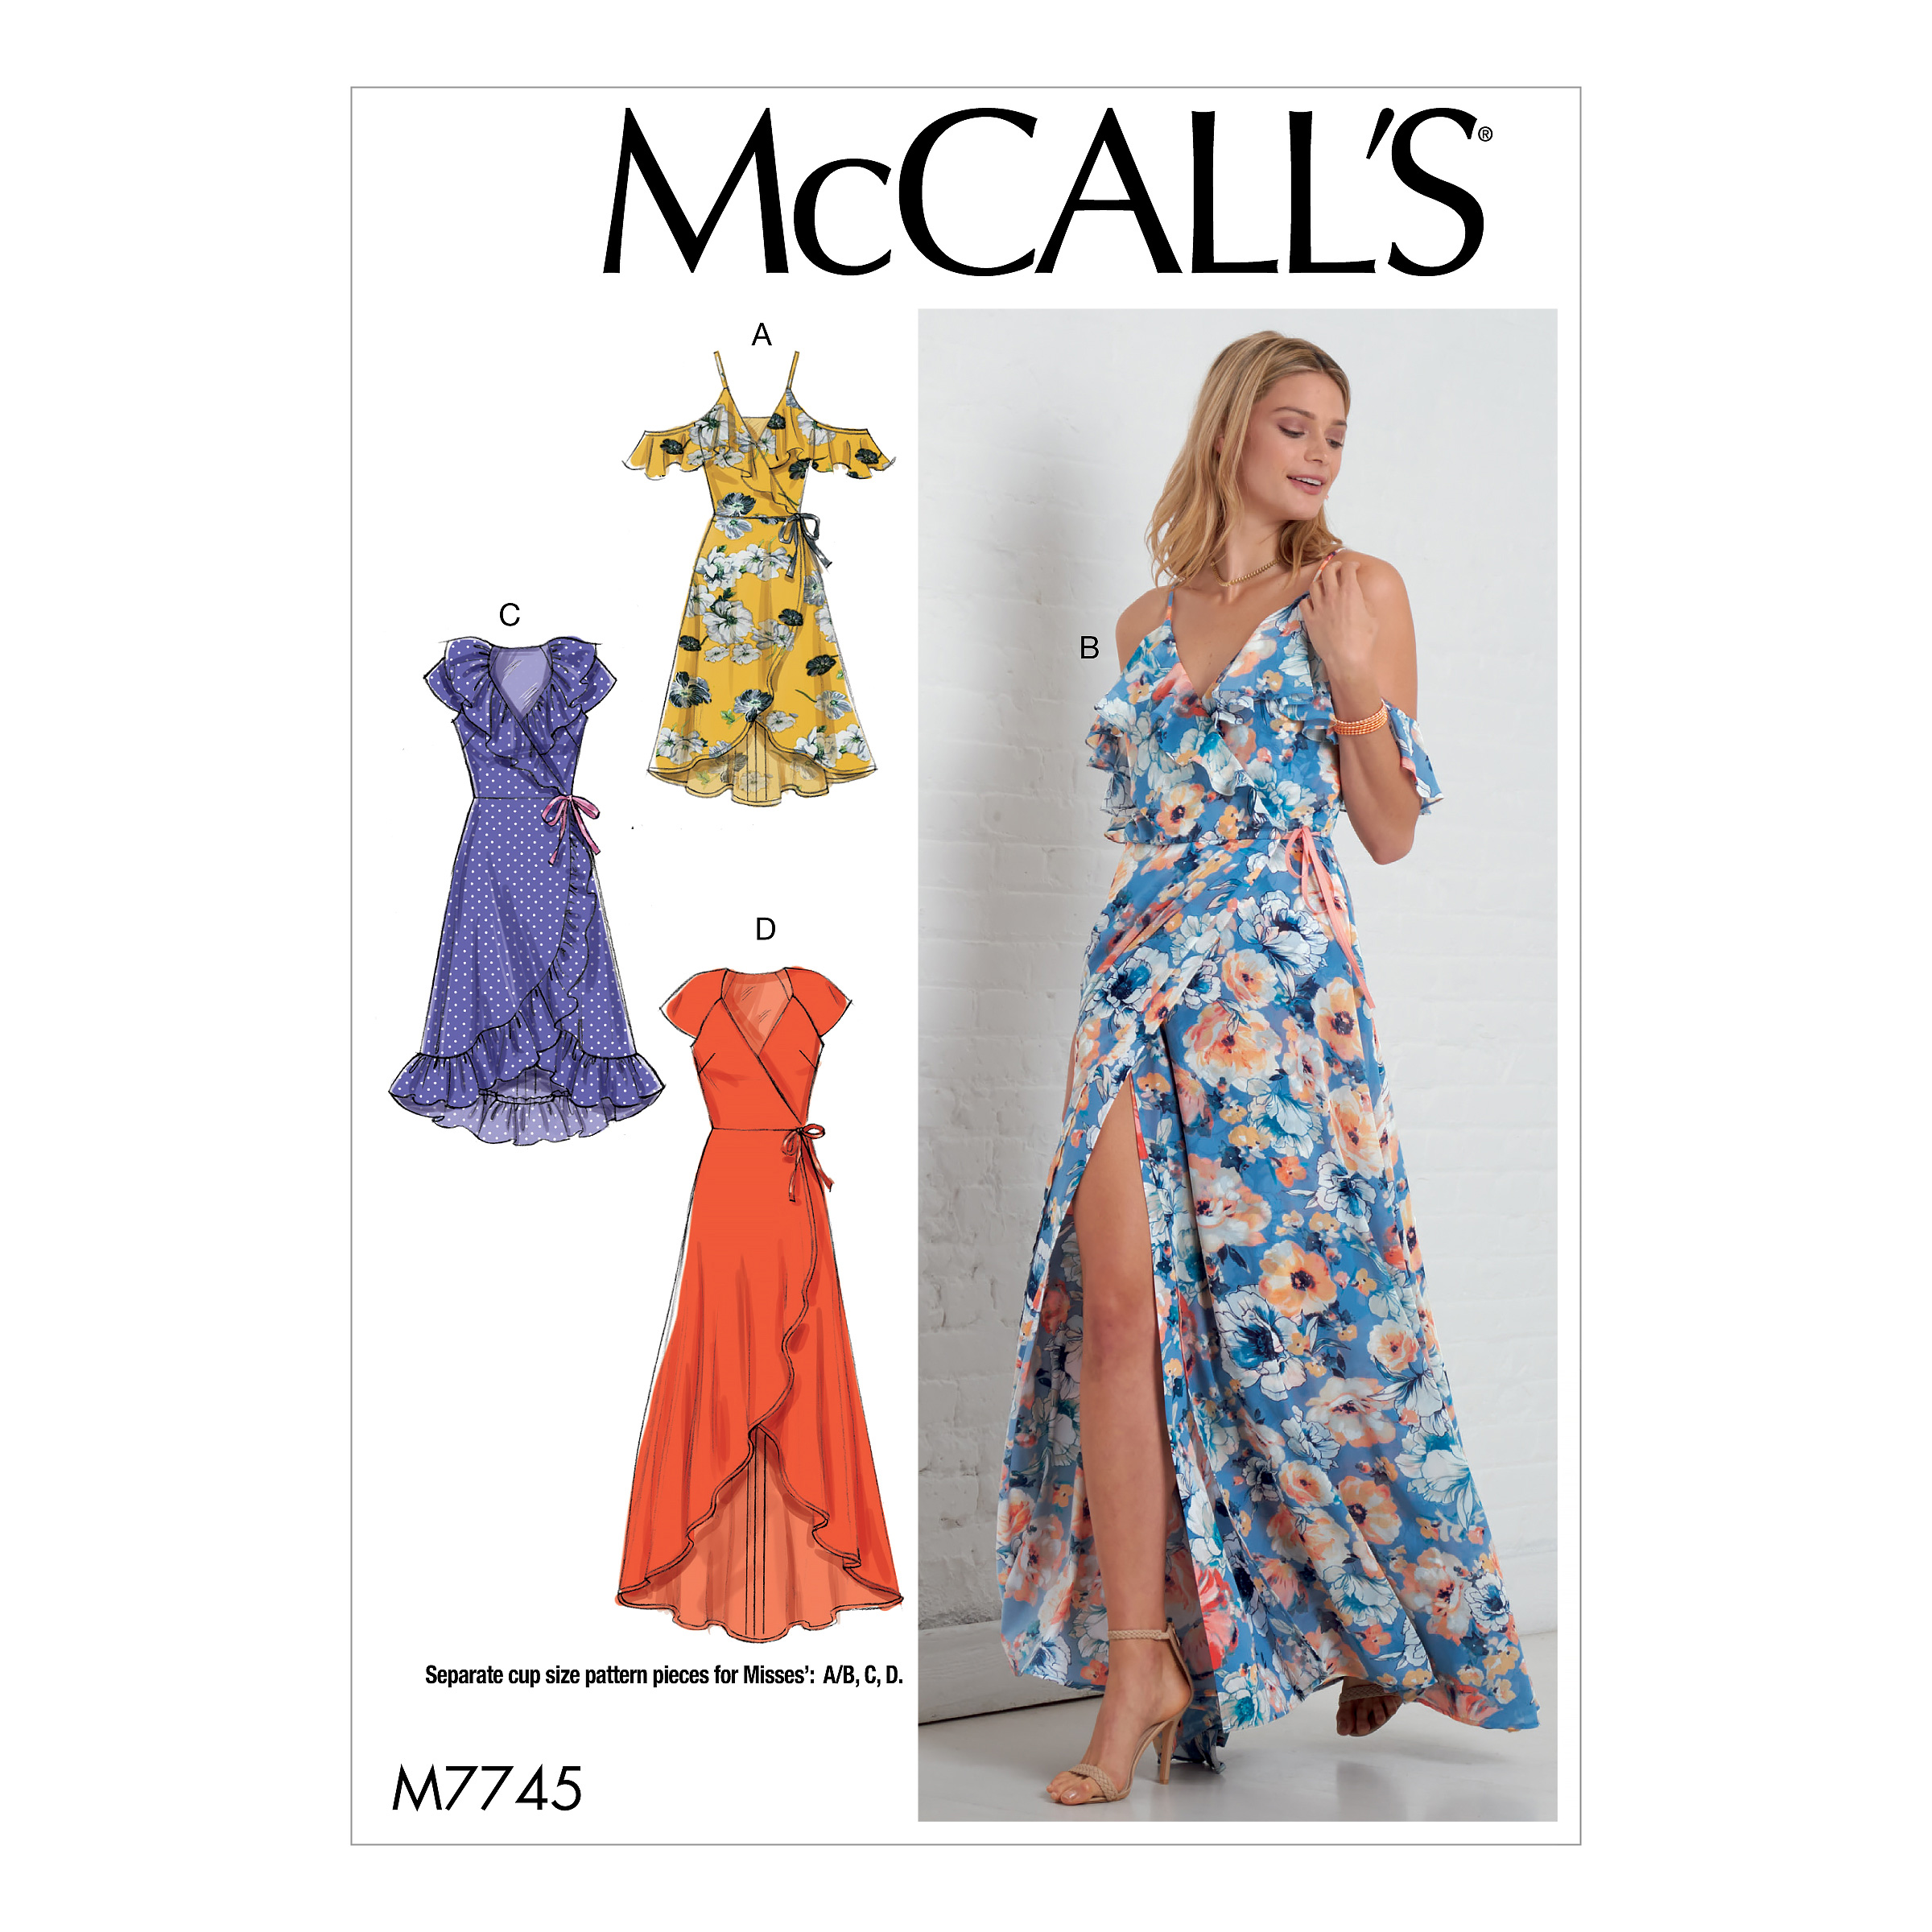 Image result for mccalls 7745